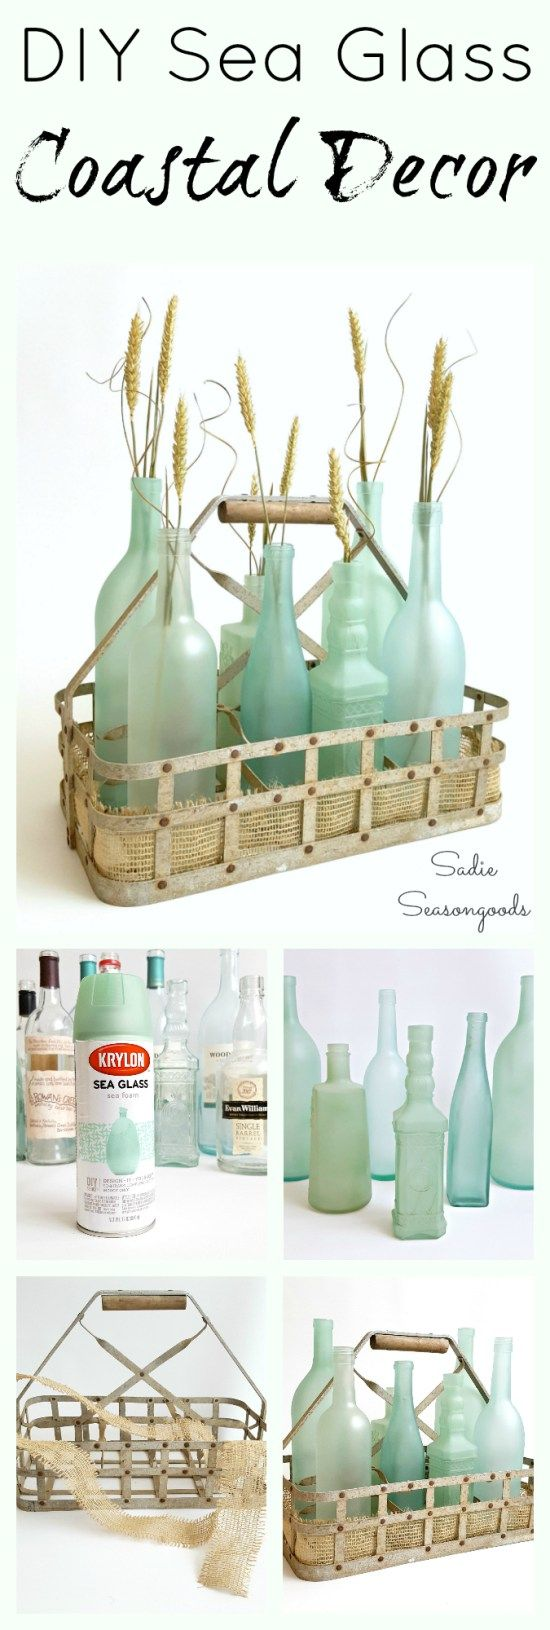 best 25+ glass craft ideas on pinterest | stained glass paint